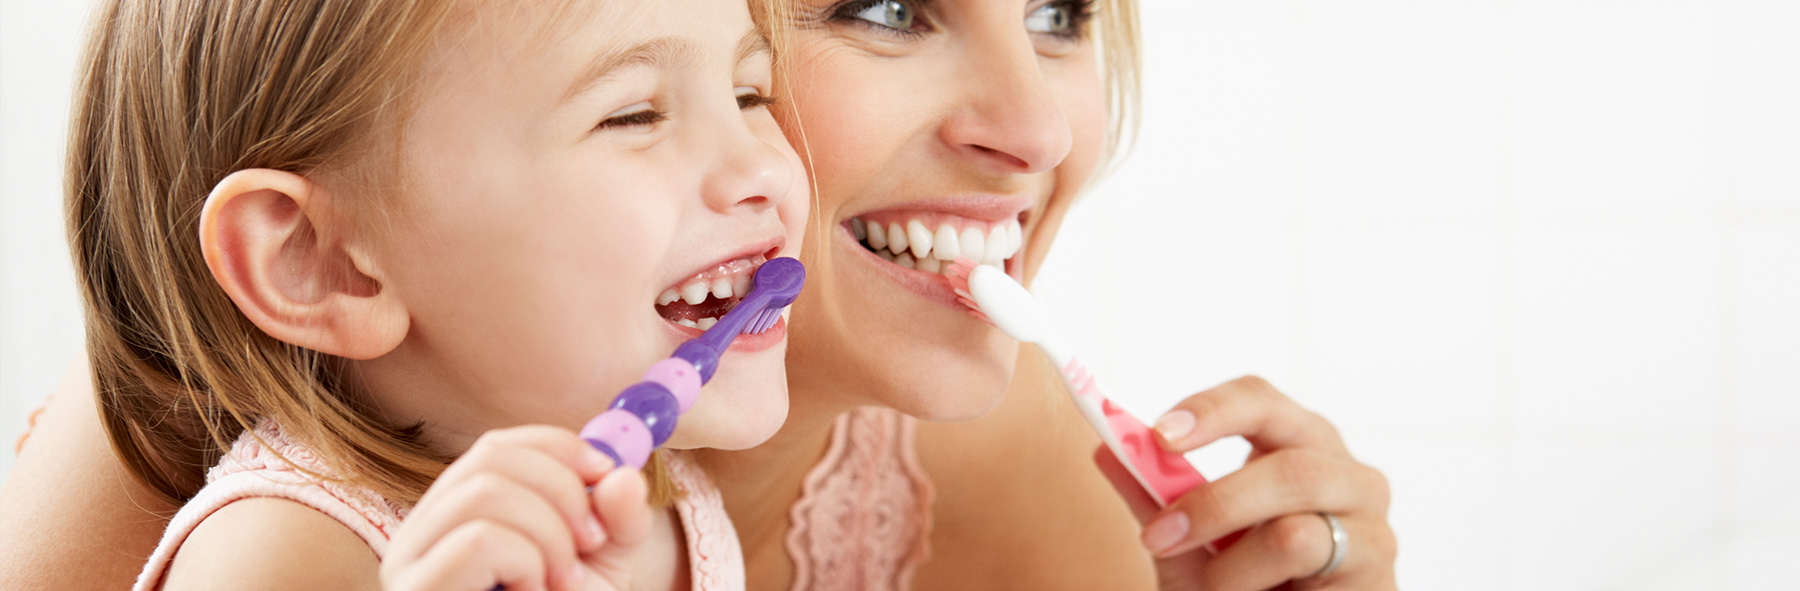 How to care for kids' teeth